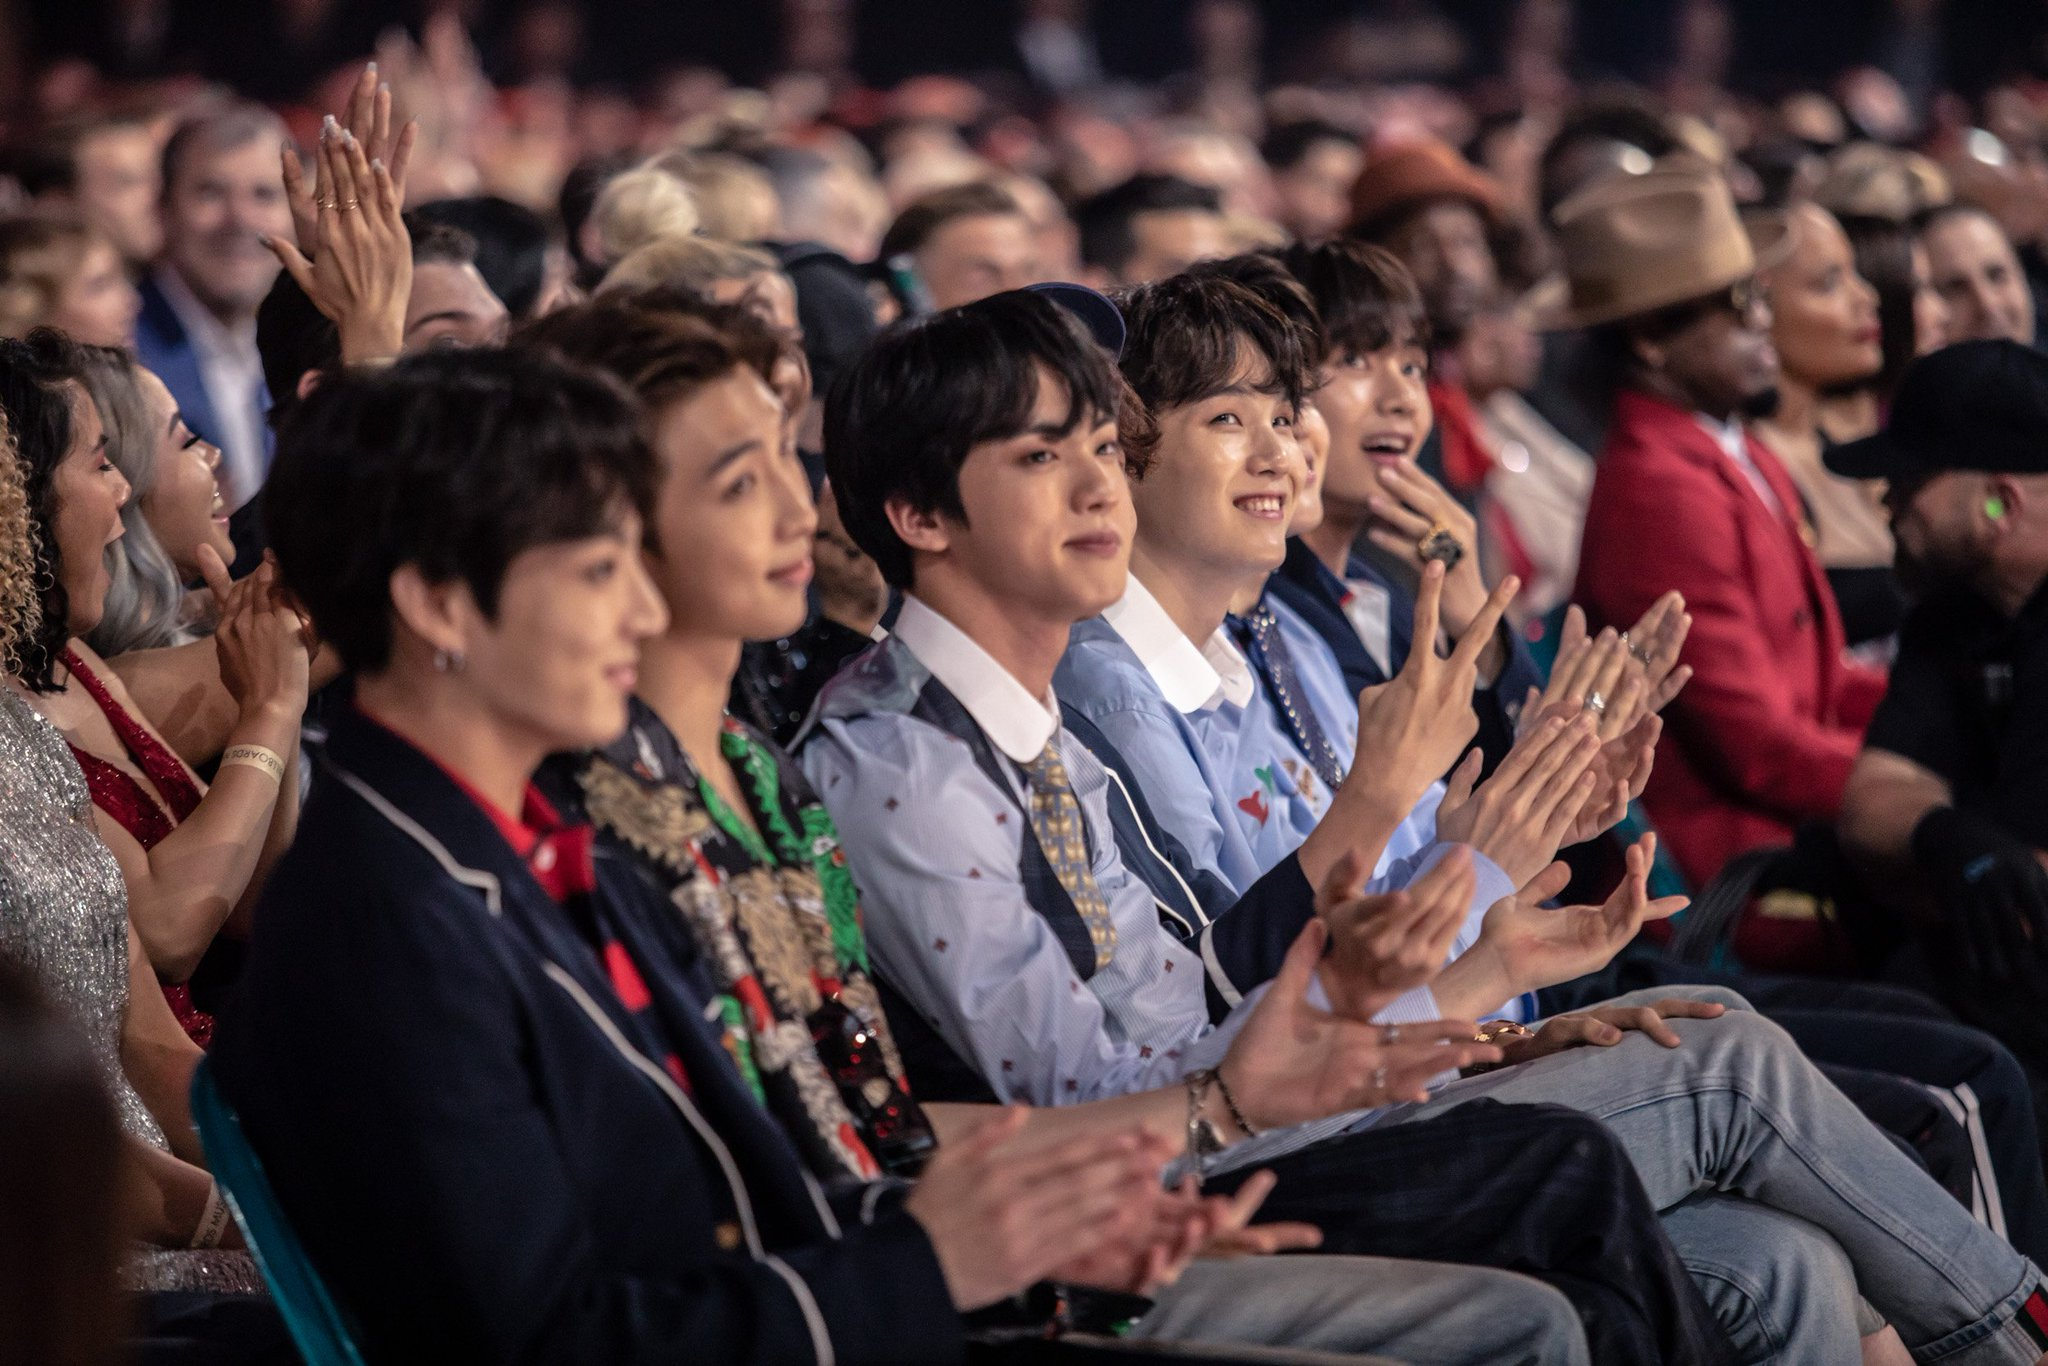 BTS enjoying the Billboard Music Awards (pics courtesy of DCP Social / DCP Digital) / @BTS_twt https://t.co/cthlNyHhmm